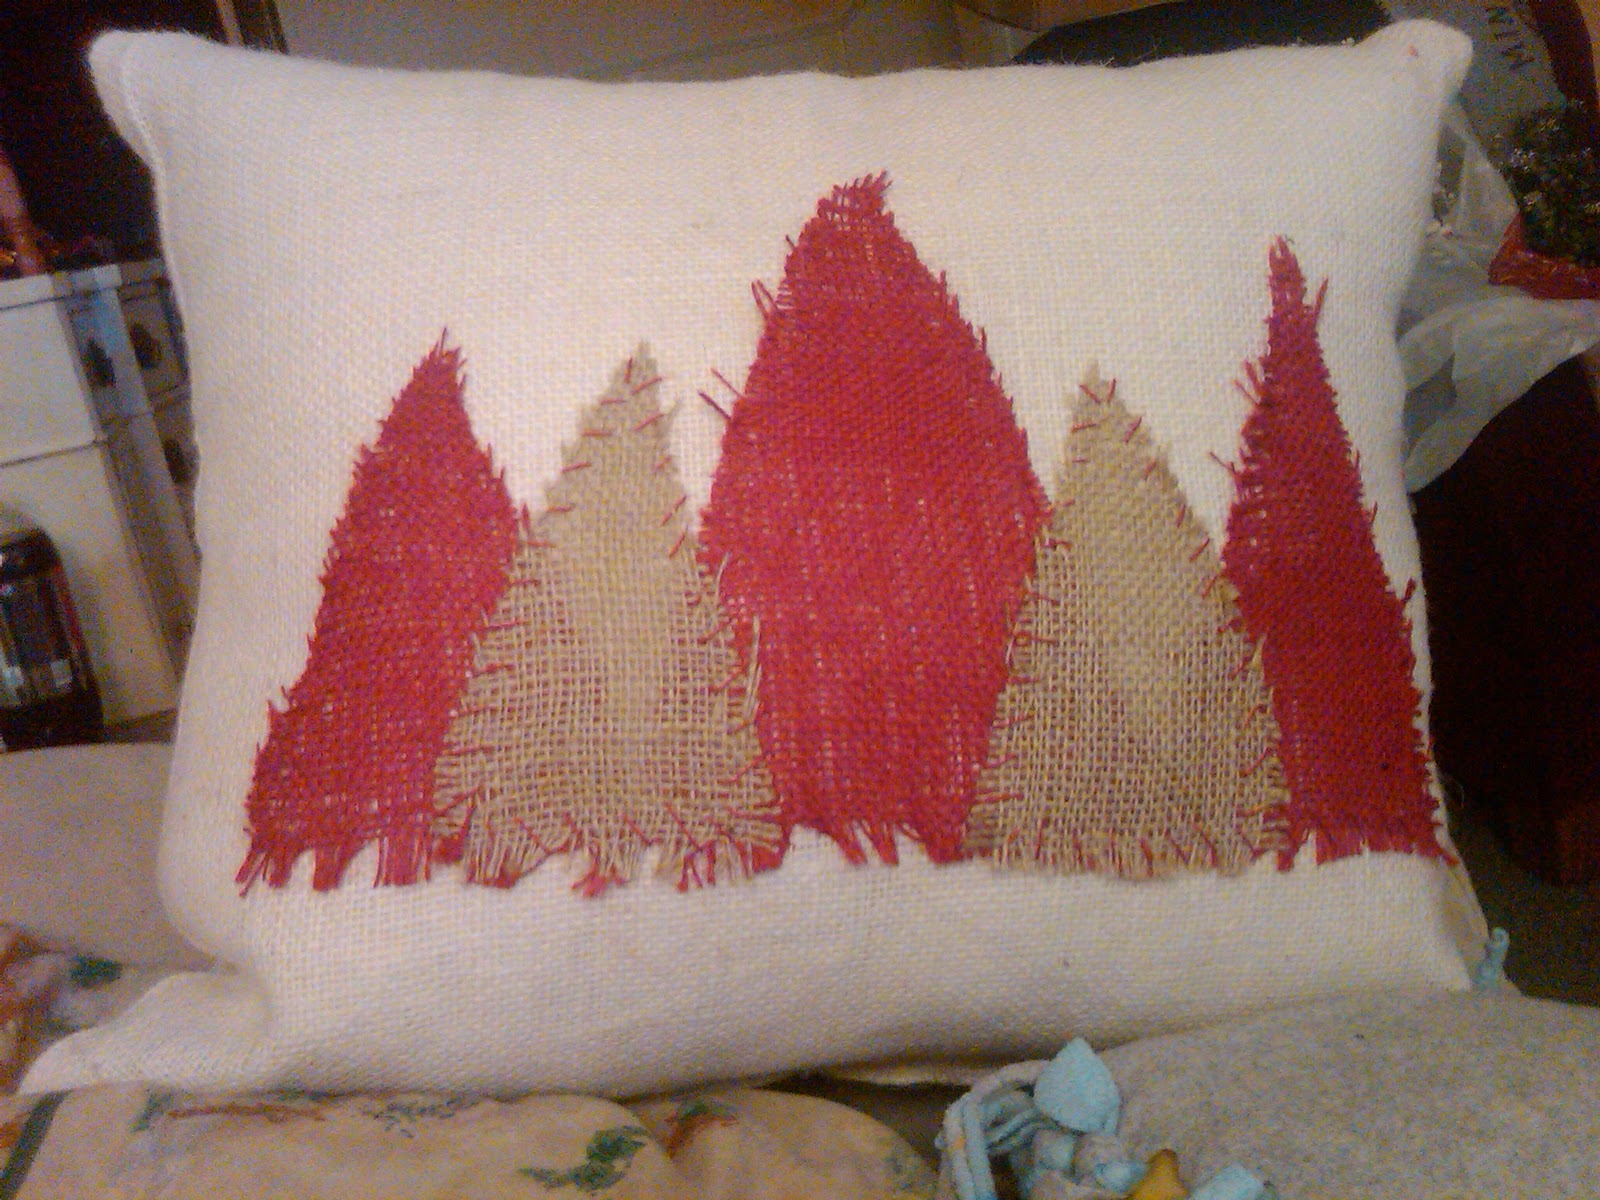 Country Style Accents Christmas Pillows out of burlap